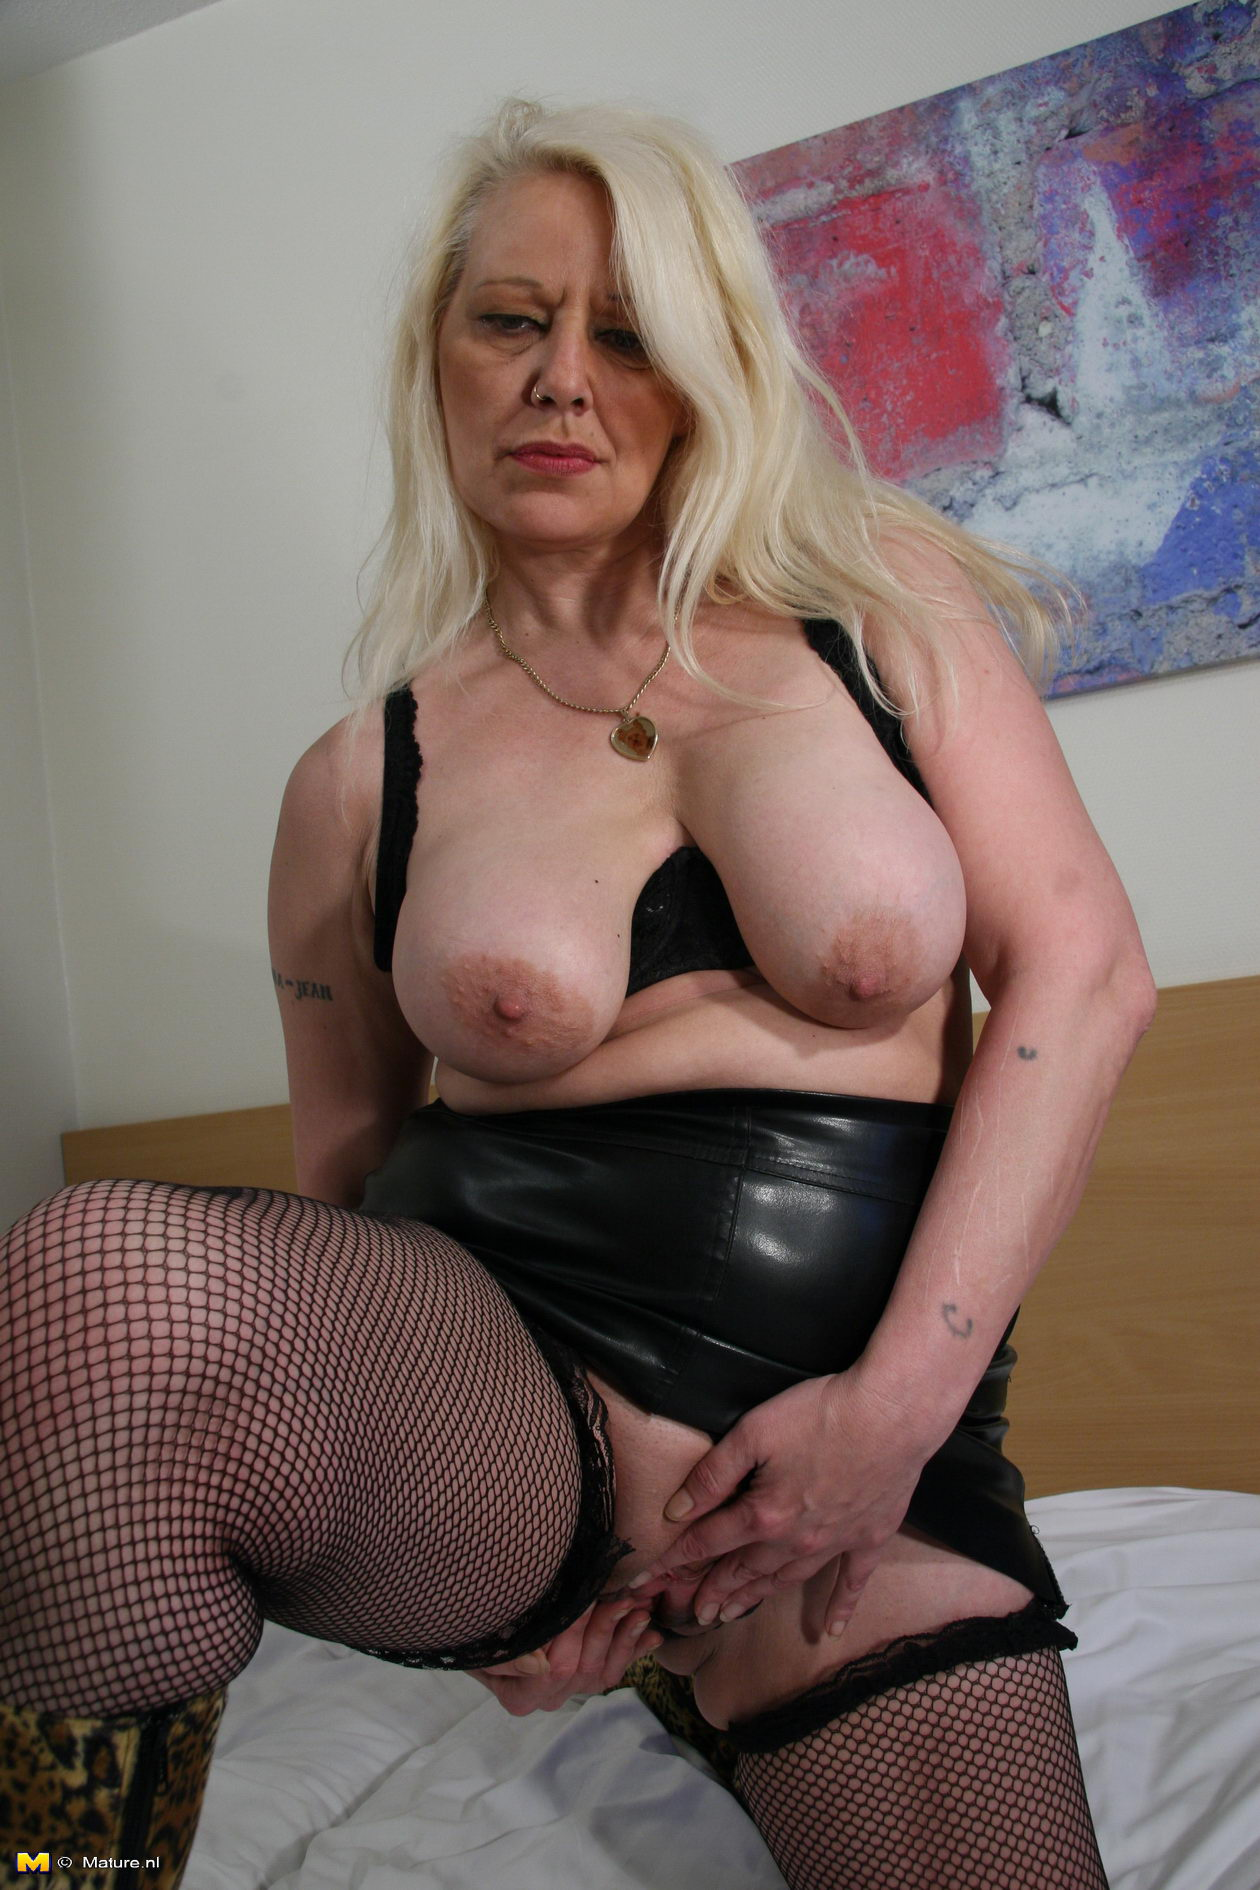 Old solo milf pics solo video xxx